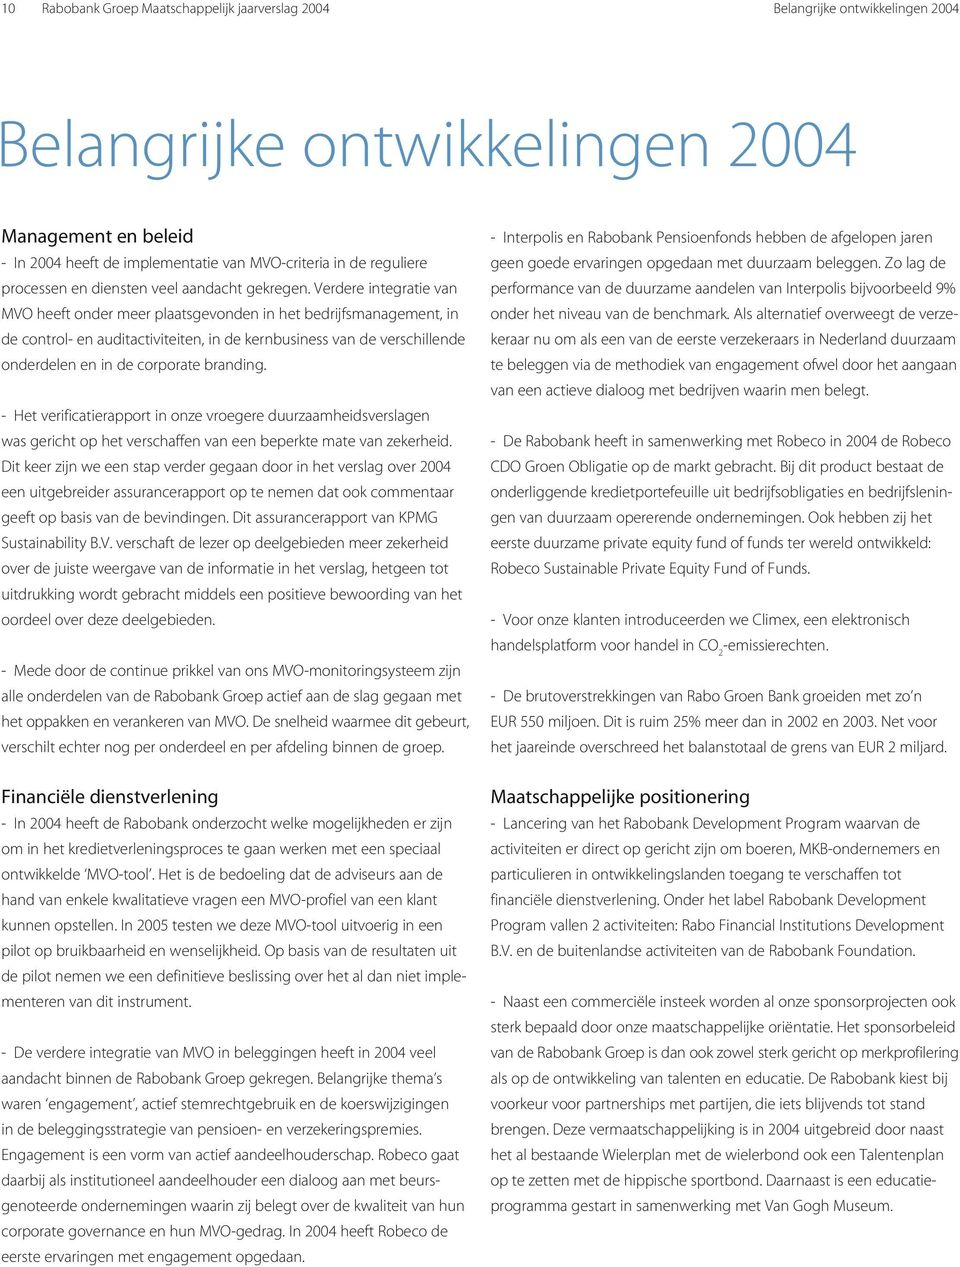 Verdere integratie van MVO heeft onder meer plaatsgevonden in het bedrijfsmanagement, in de control- en auditactiviteiten, in de kernbusiness van de verschillende onderdelen en in de corporate